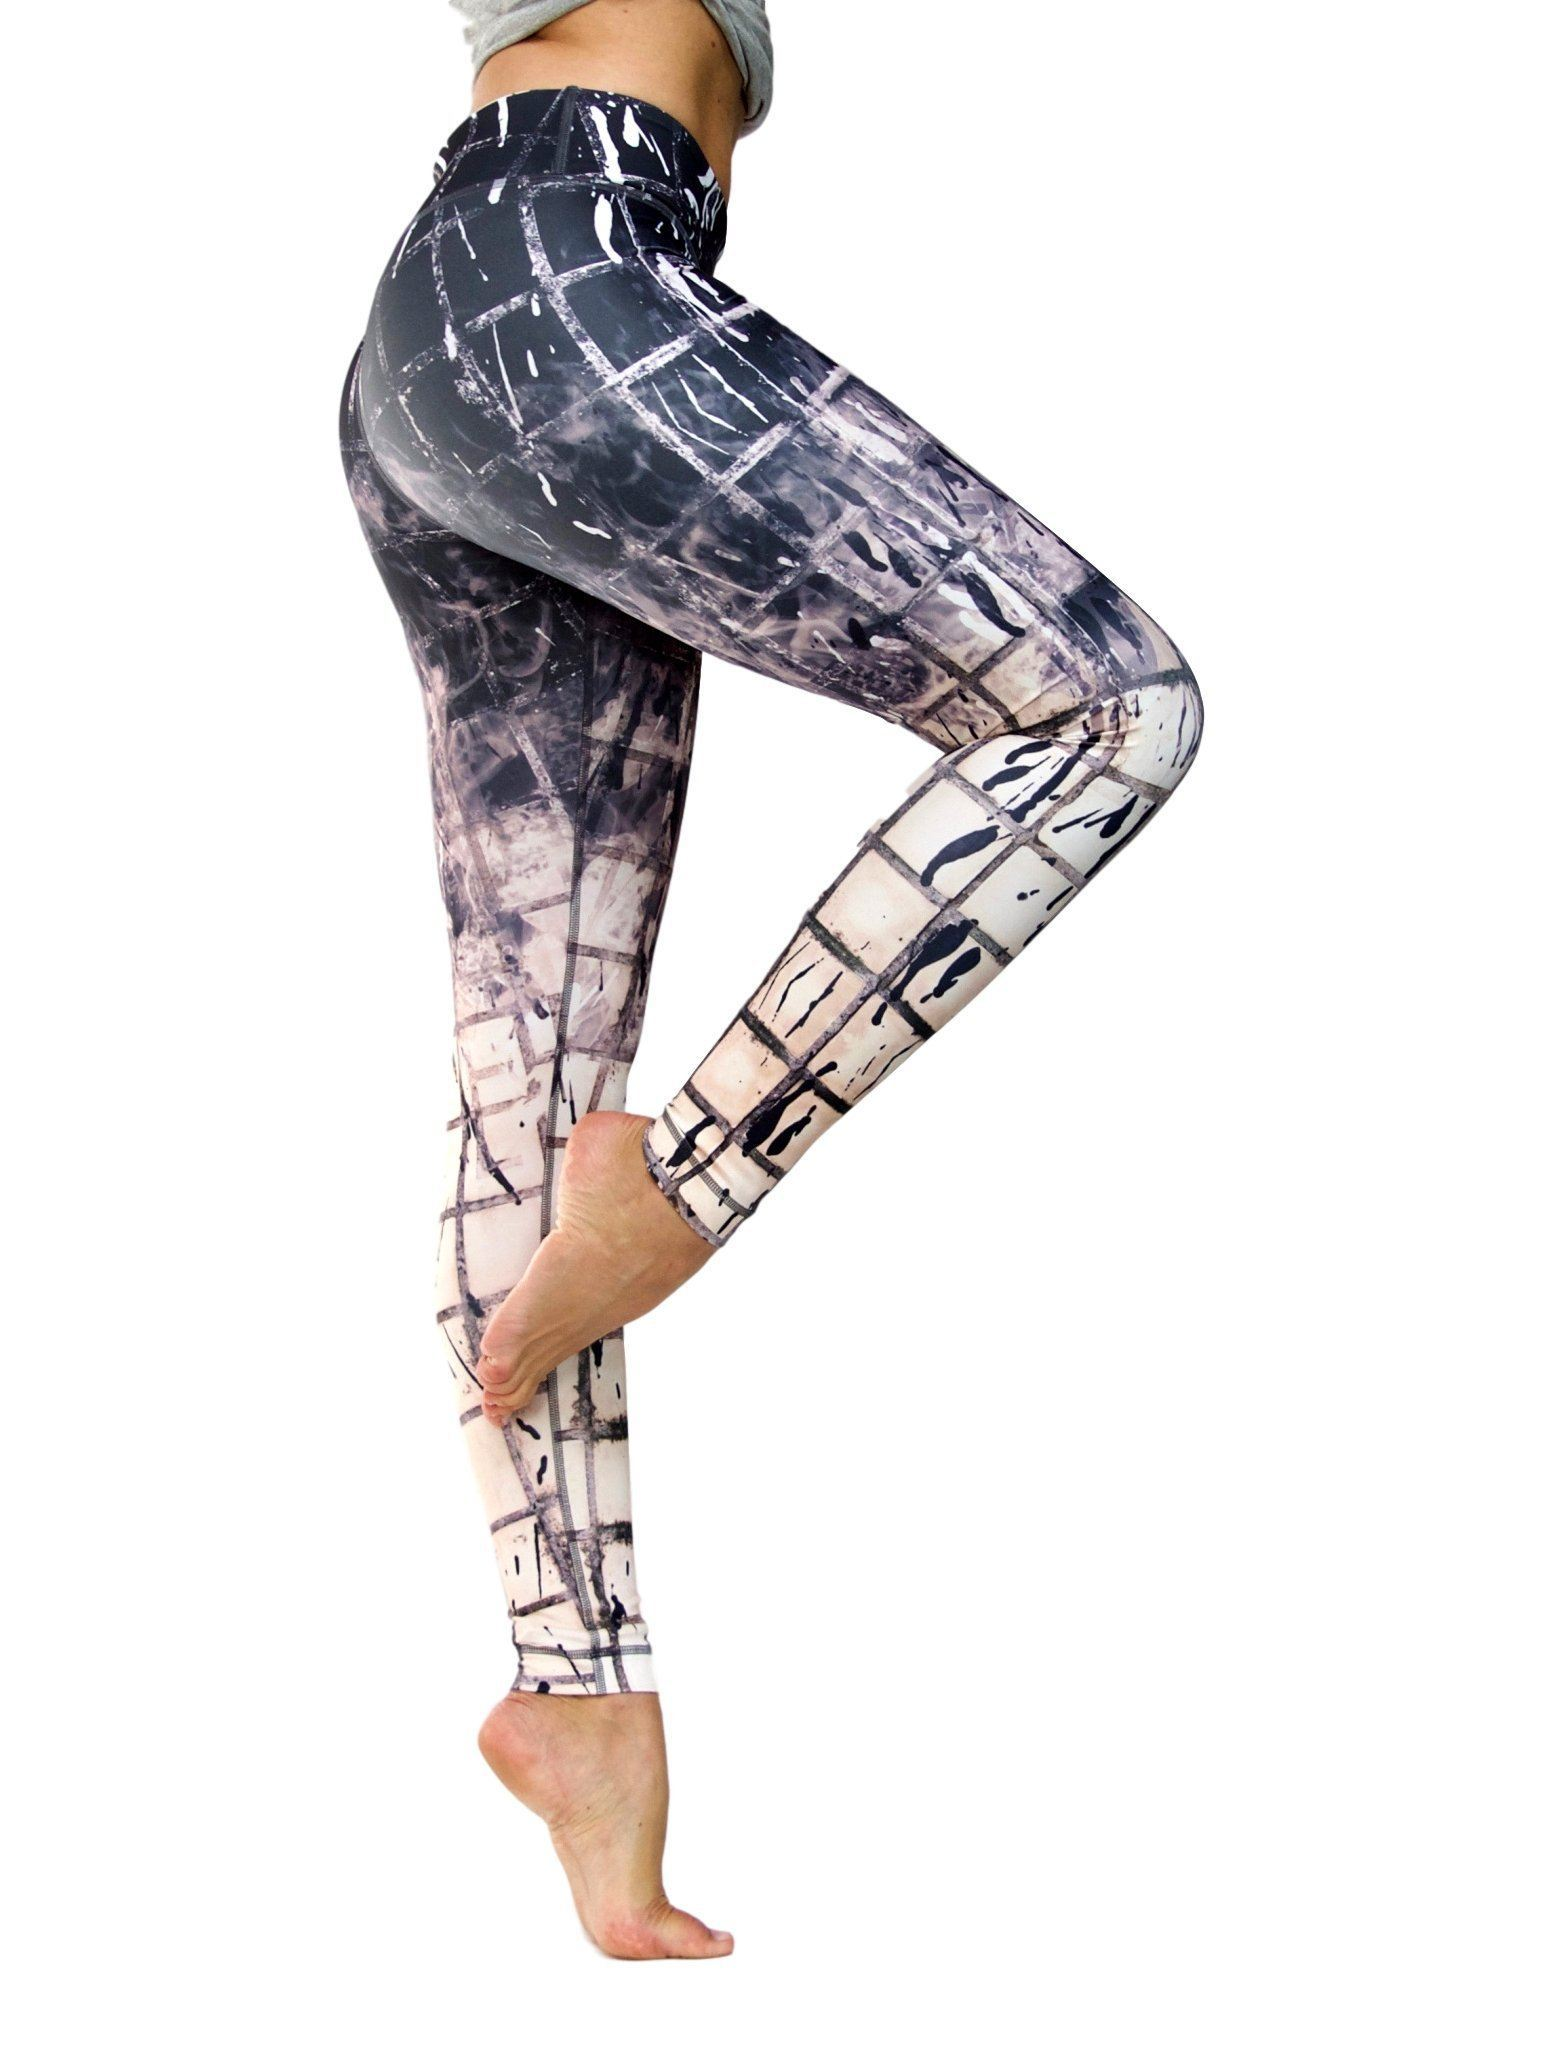 Art Attack by Niyama - High Quality, , Yoga Legging for Movement Artists.